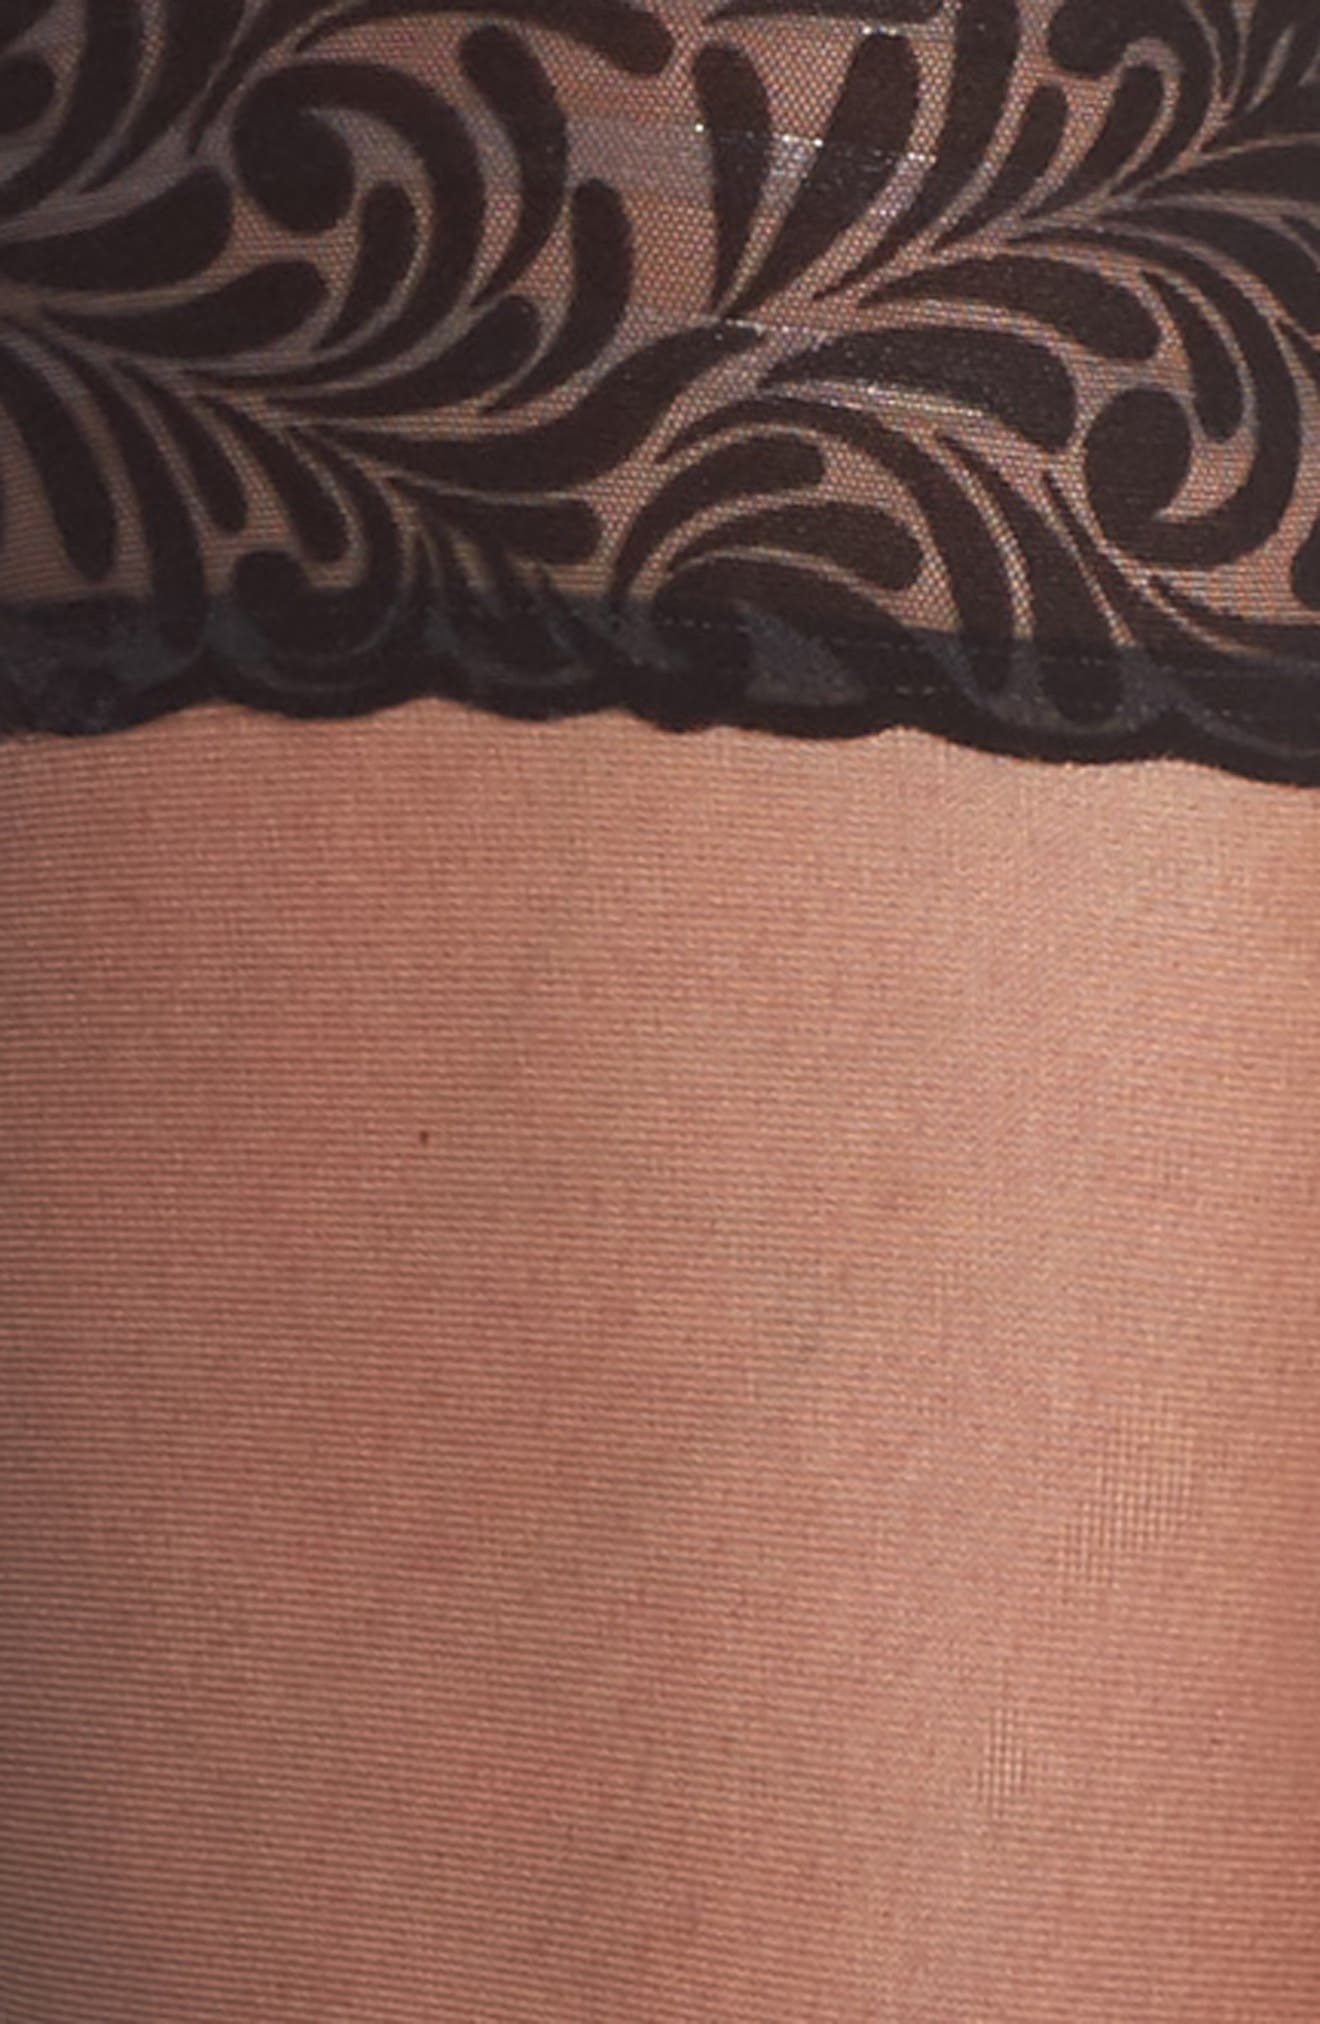 Iris Stay-Up Stockings,                             Alternate thumbnail 3, color,                             Black